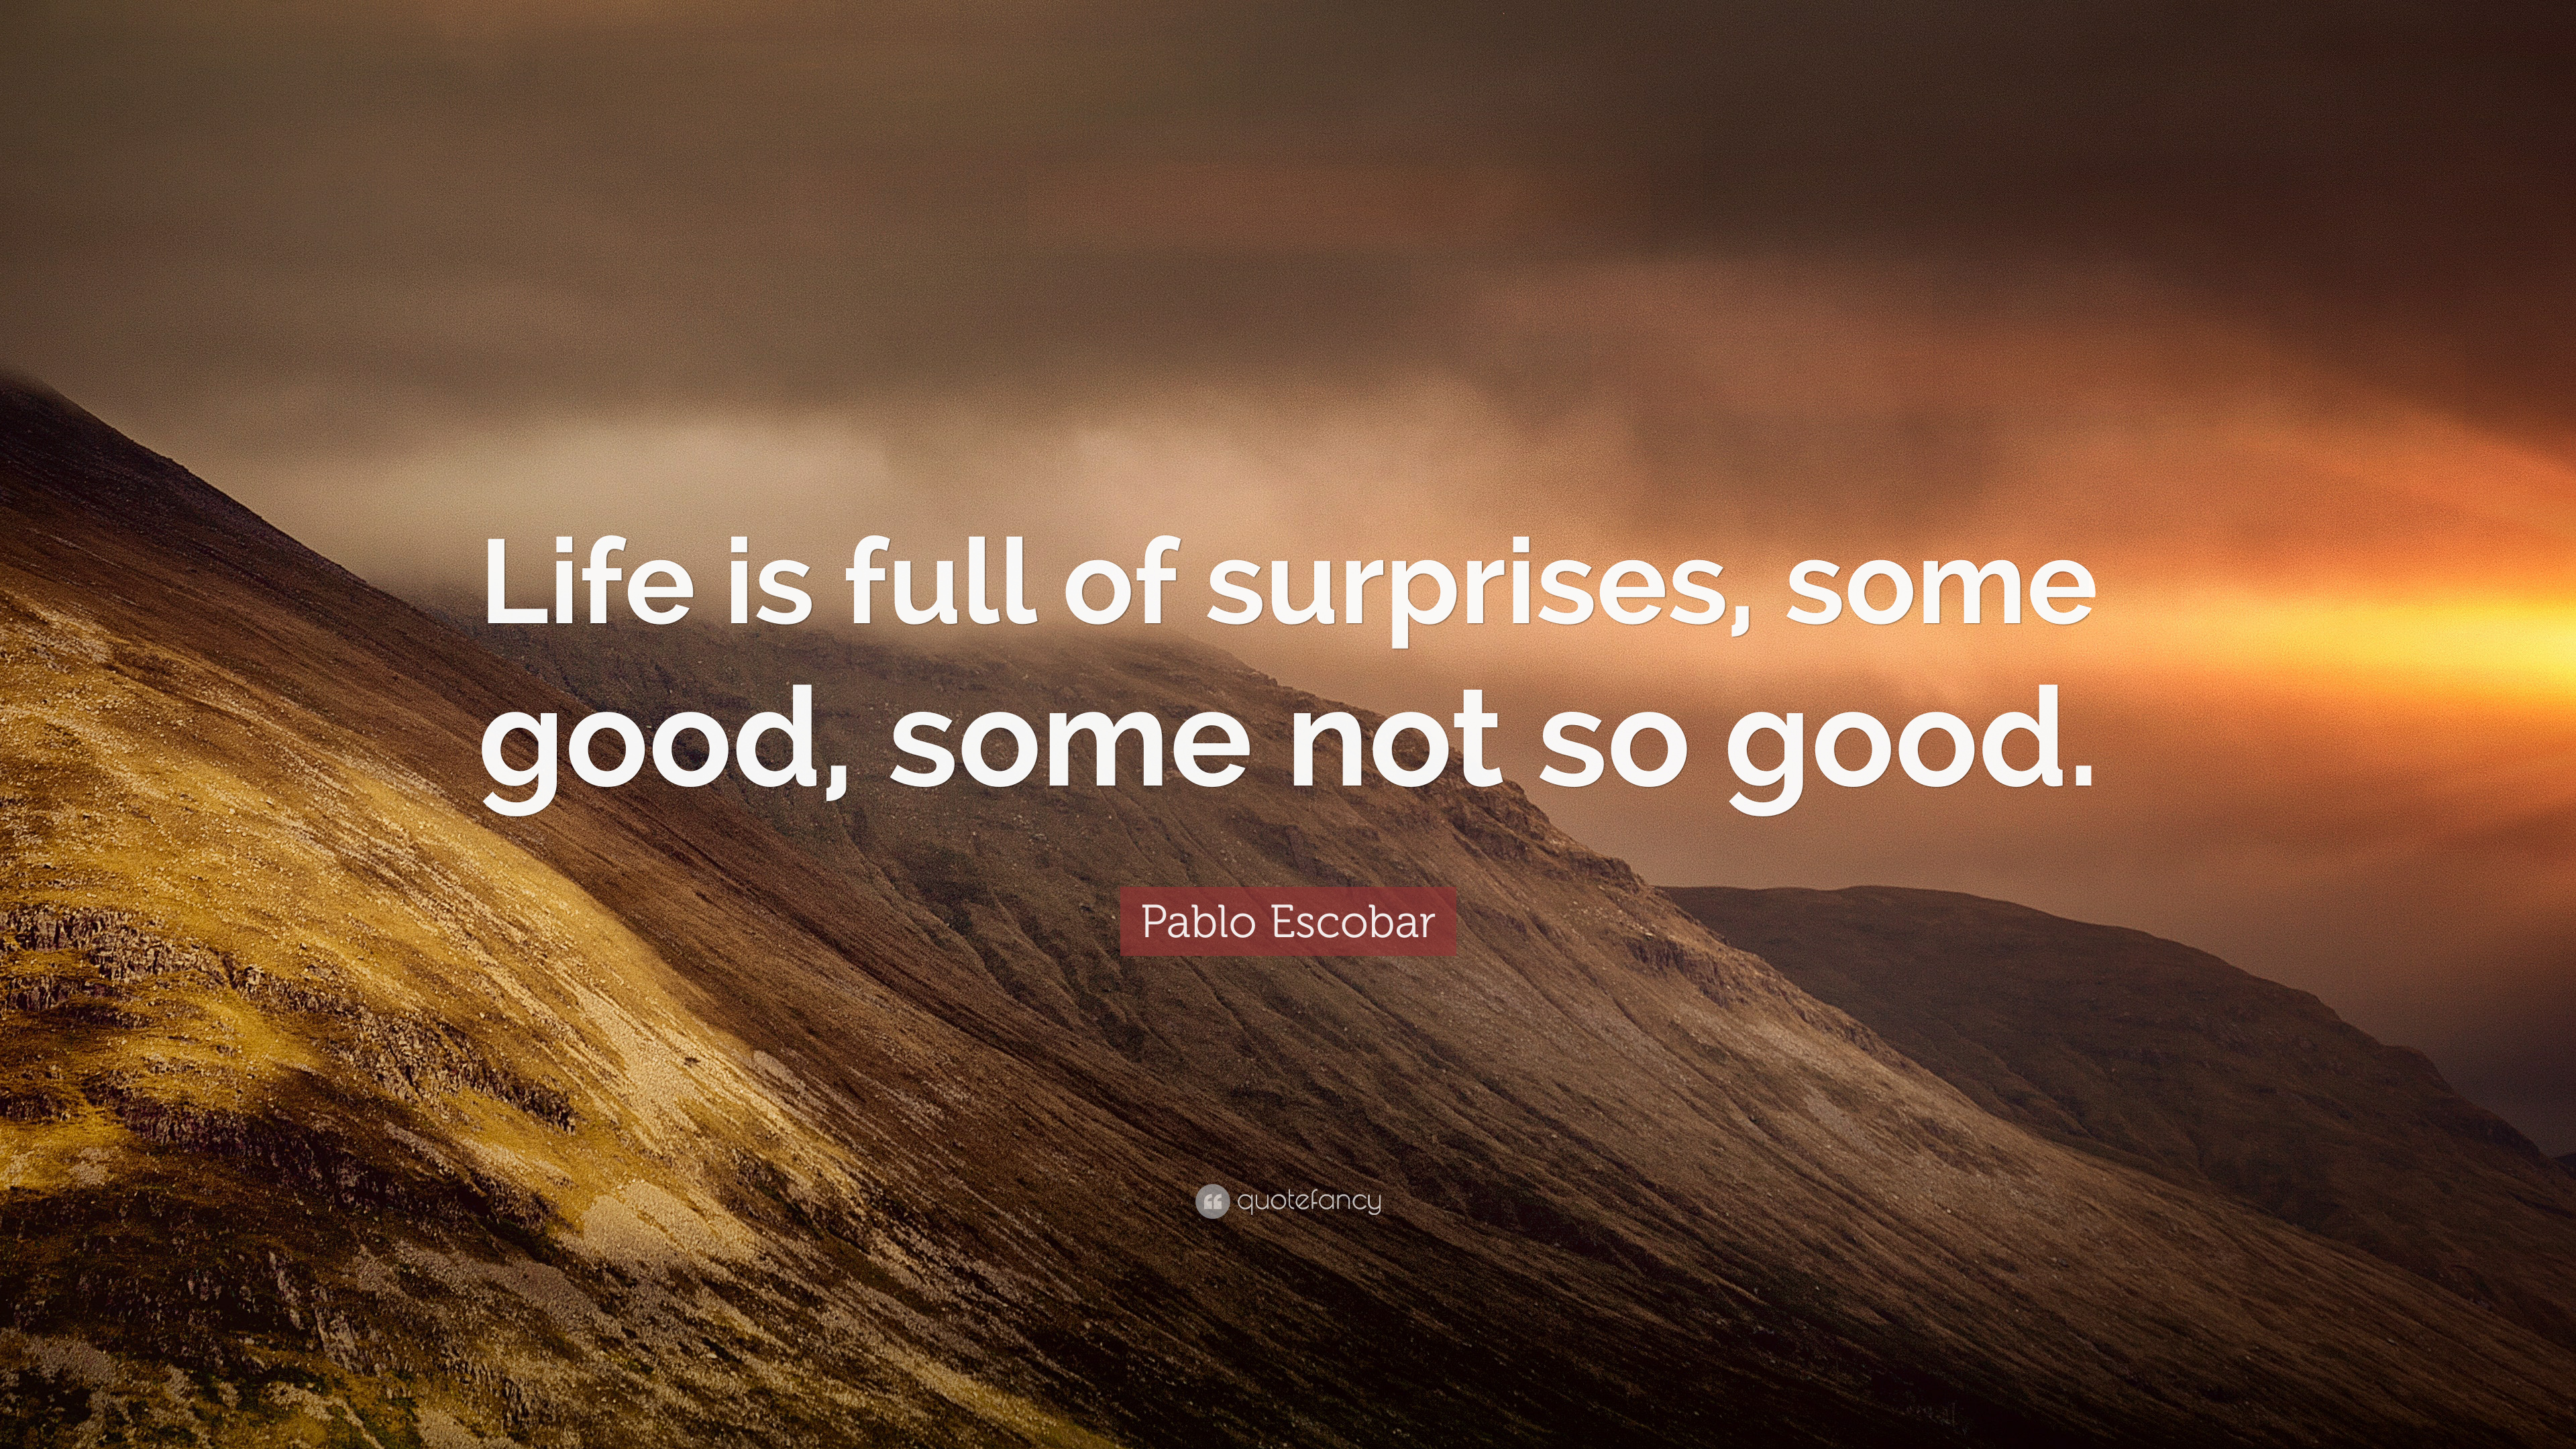 pablo escobar quote   u201clife is full of surprises  some good  some not so good  u201d  12 wallpapers